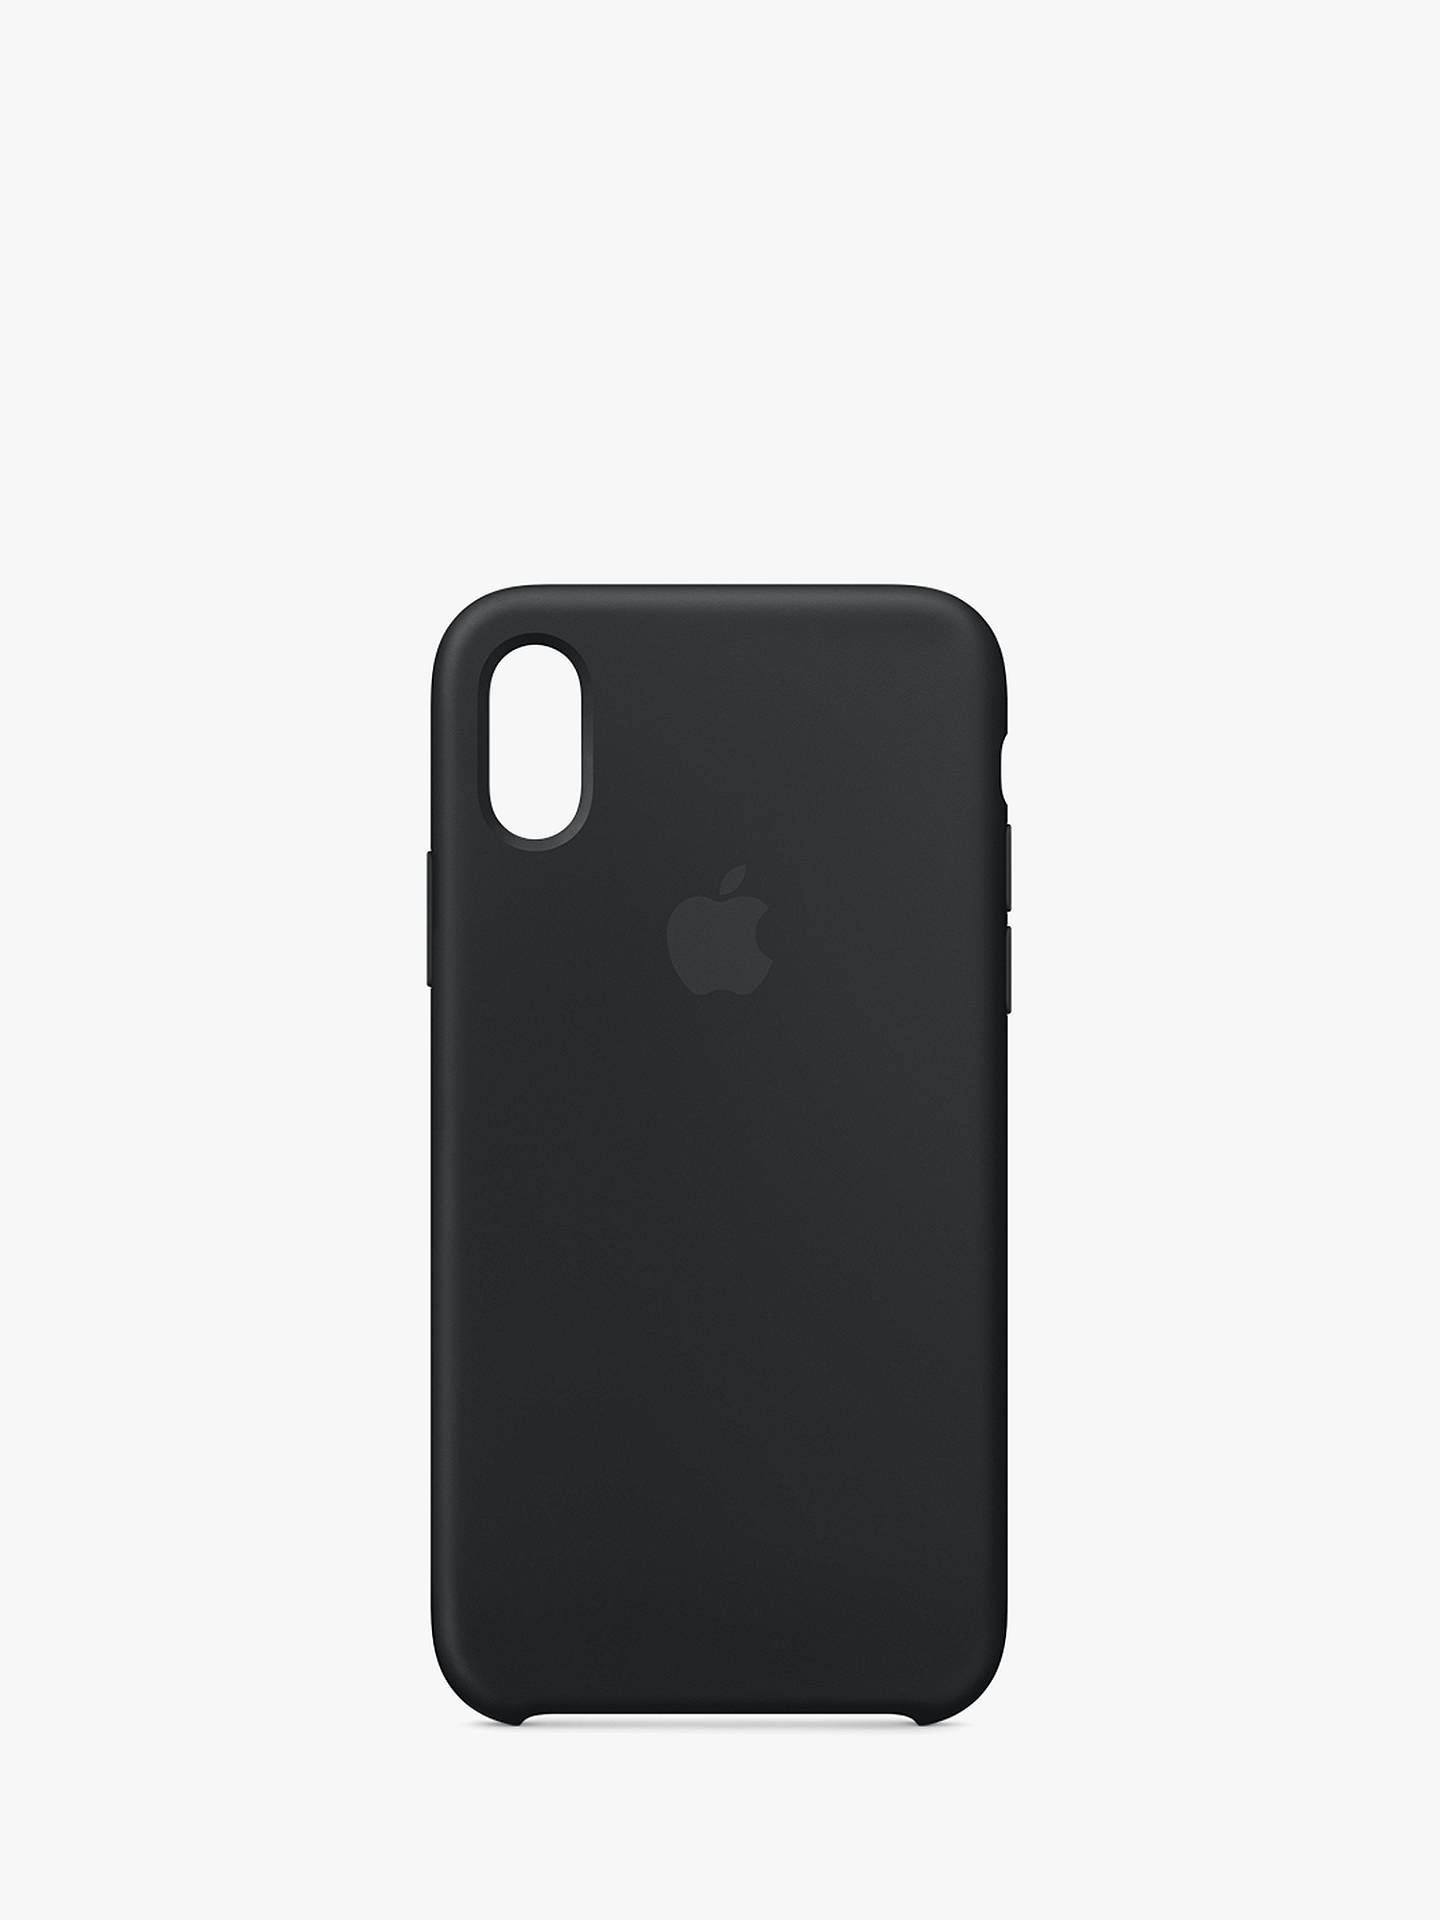 BuyApple Silicone Case for iPhone XS, Black Online at johnlewis.com